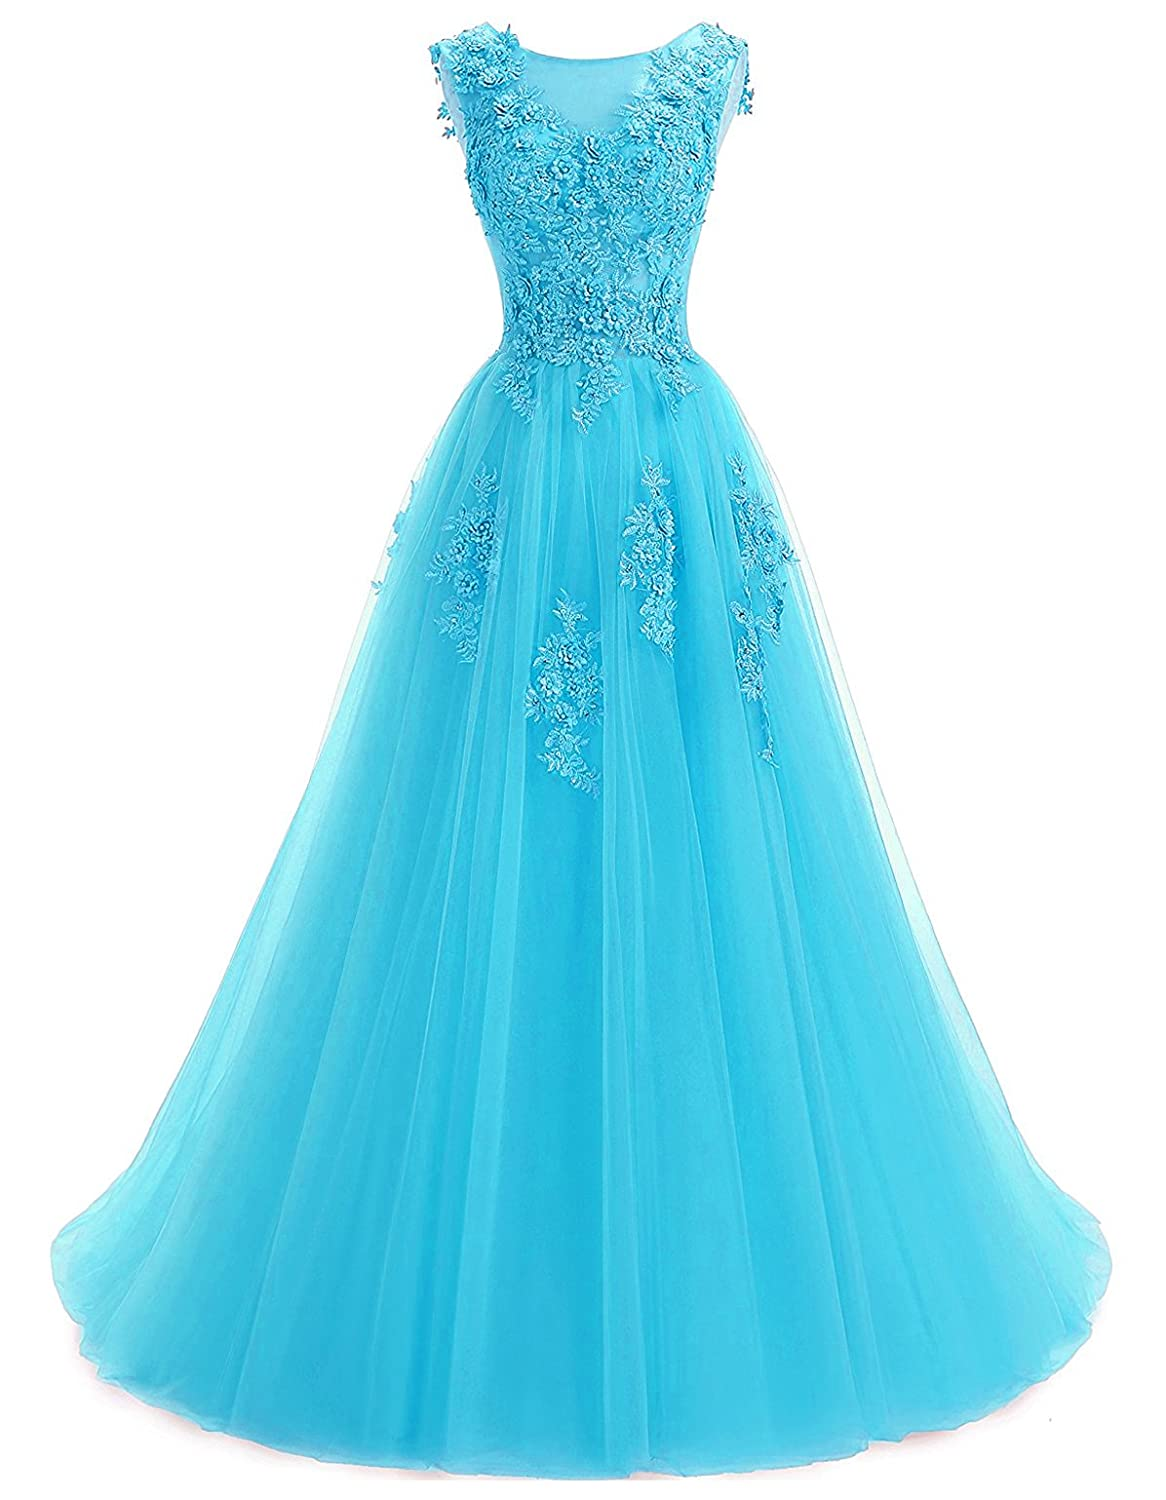 bluee Annxpink Women's Long Sheer Scoop Neck Beaded Pearls Flowers Tulle ALine Prom Gown Formal Evening Dress